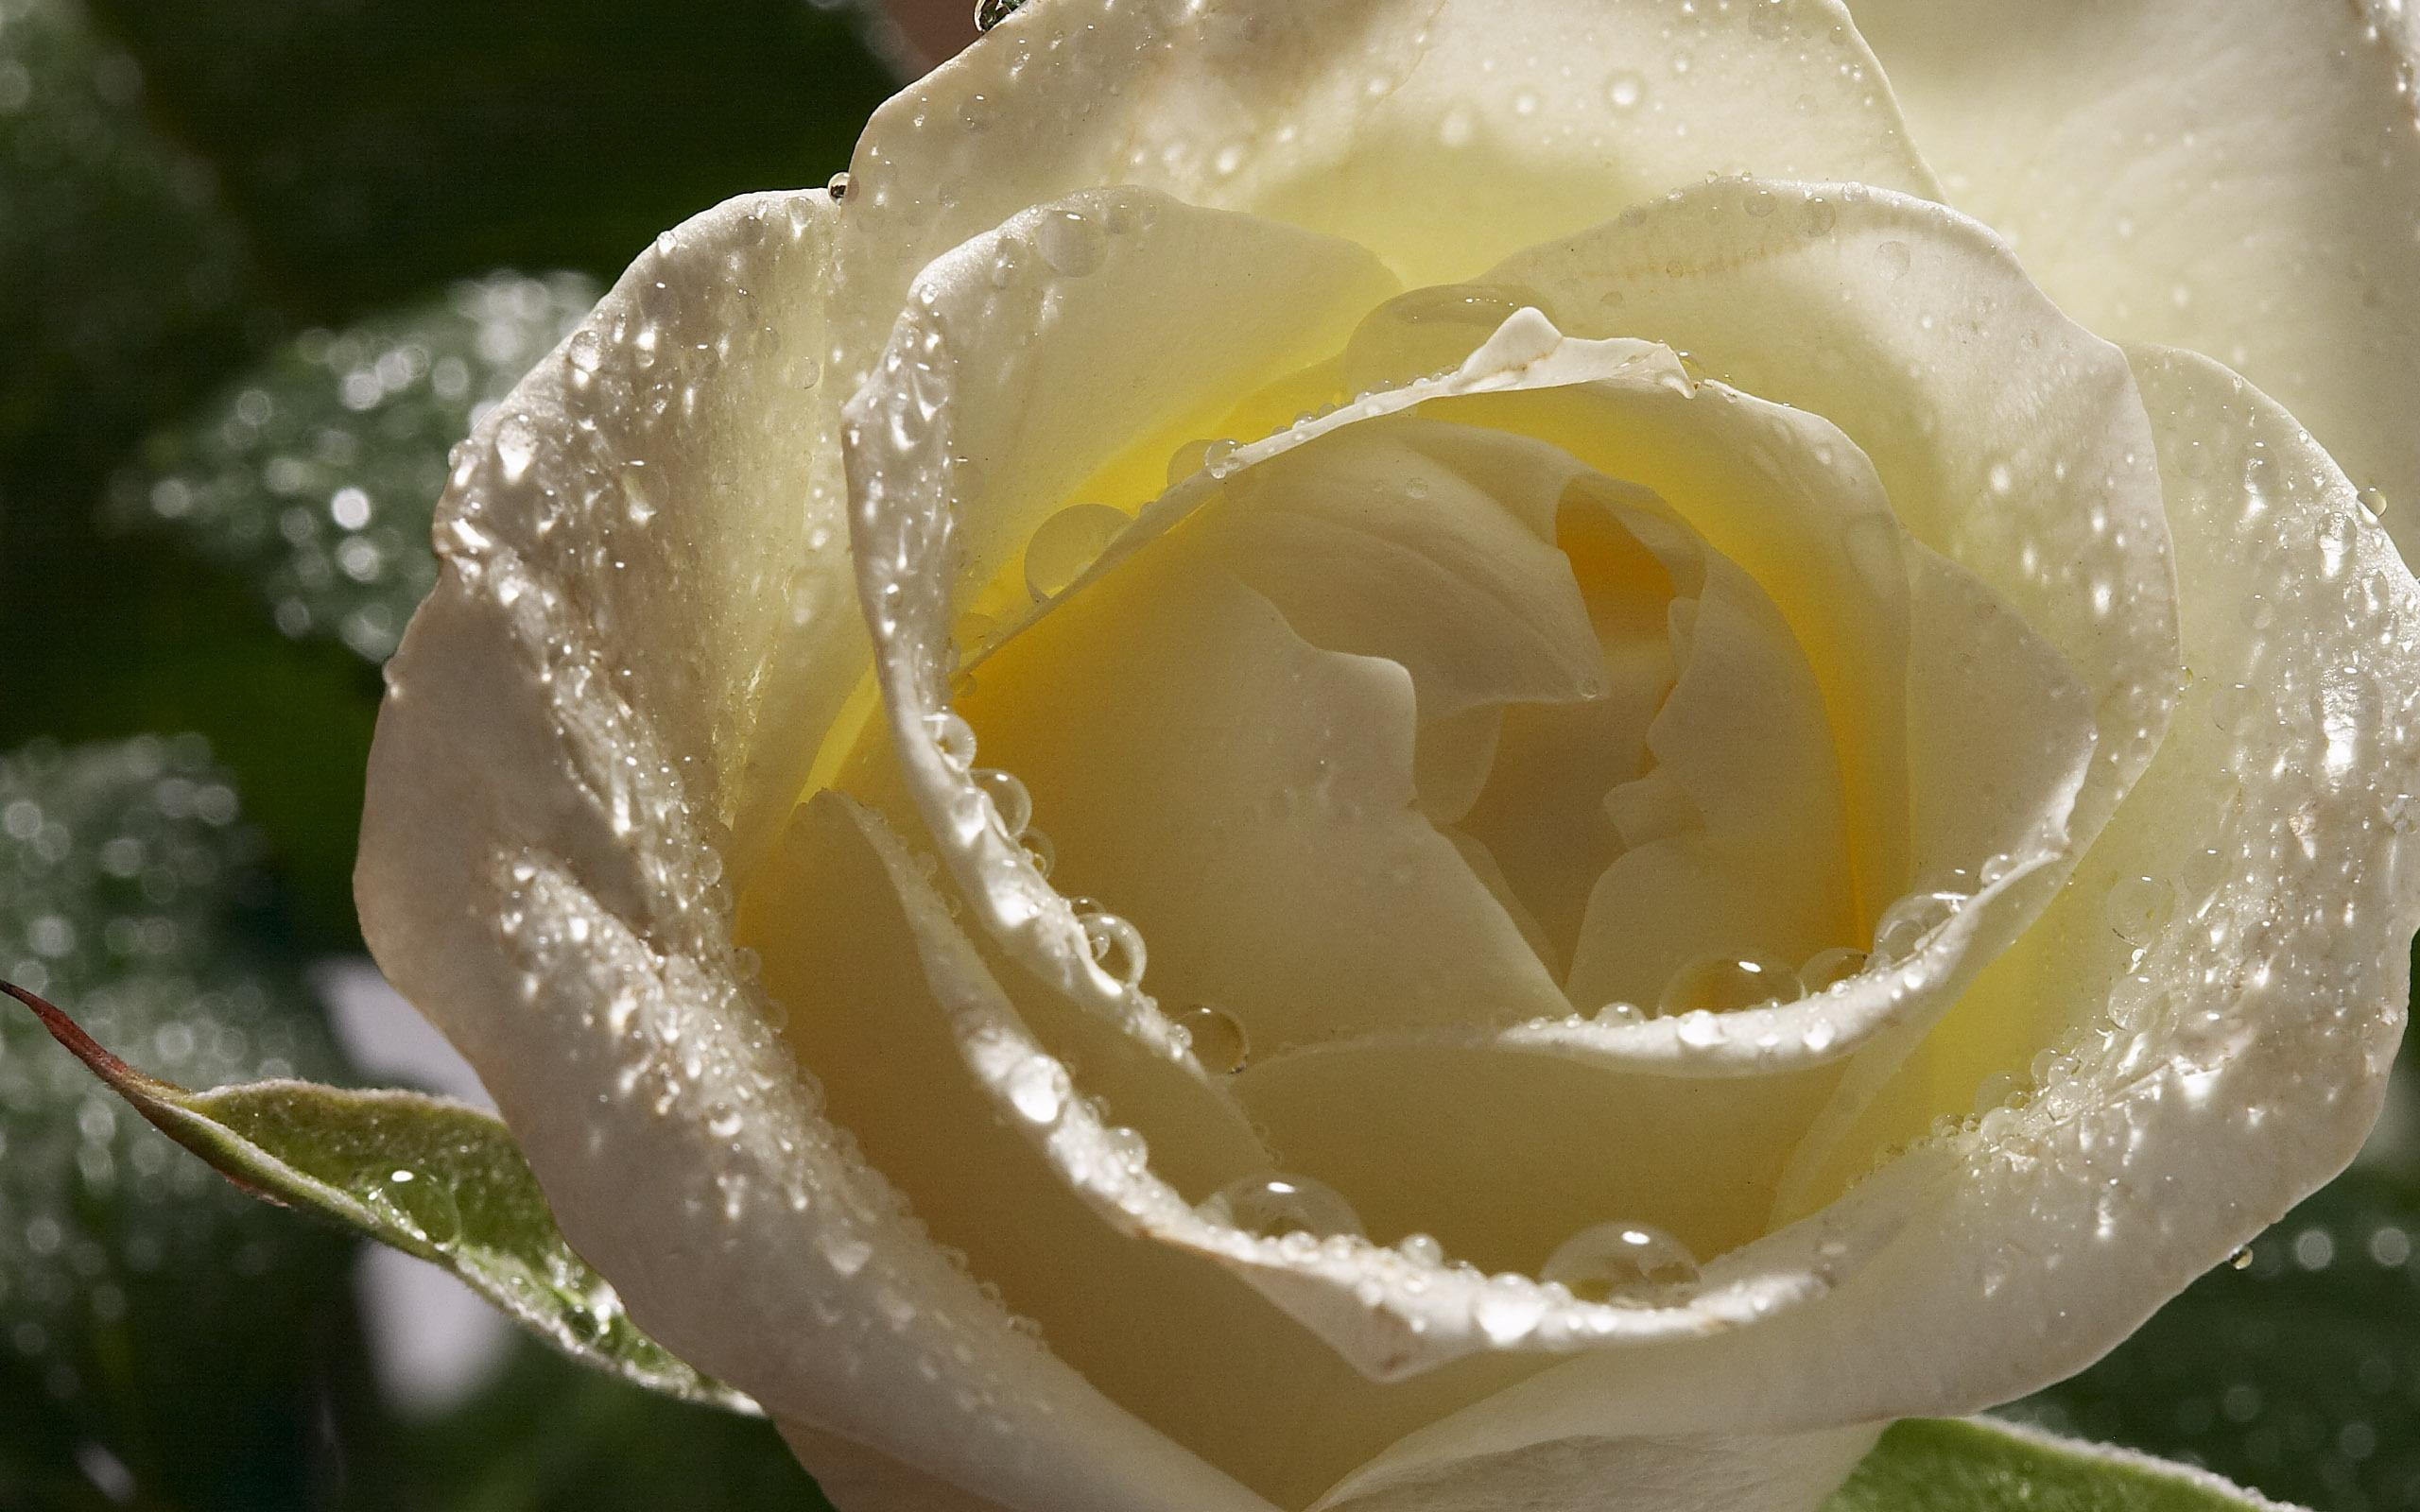 3d Rose Wallpapers Free Download - White Rose With Dew Drops , HD Wallpaper & Backgrounds